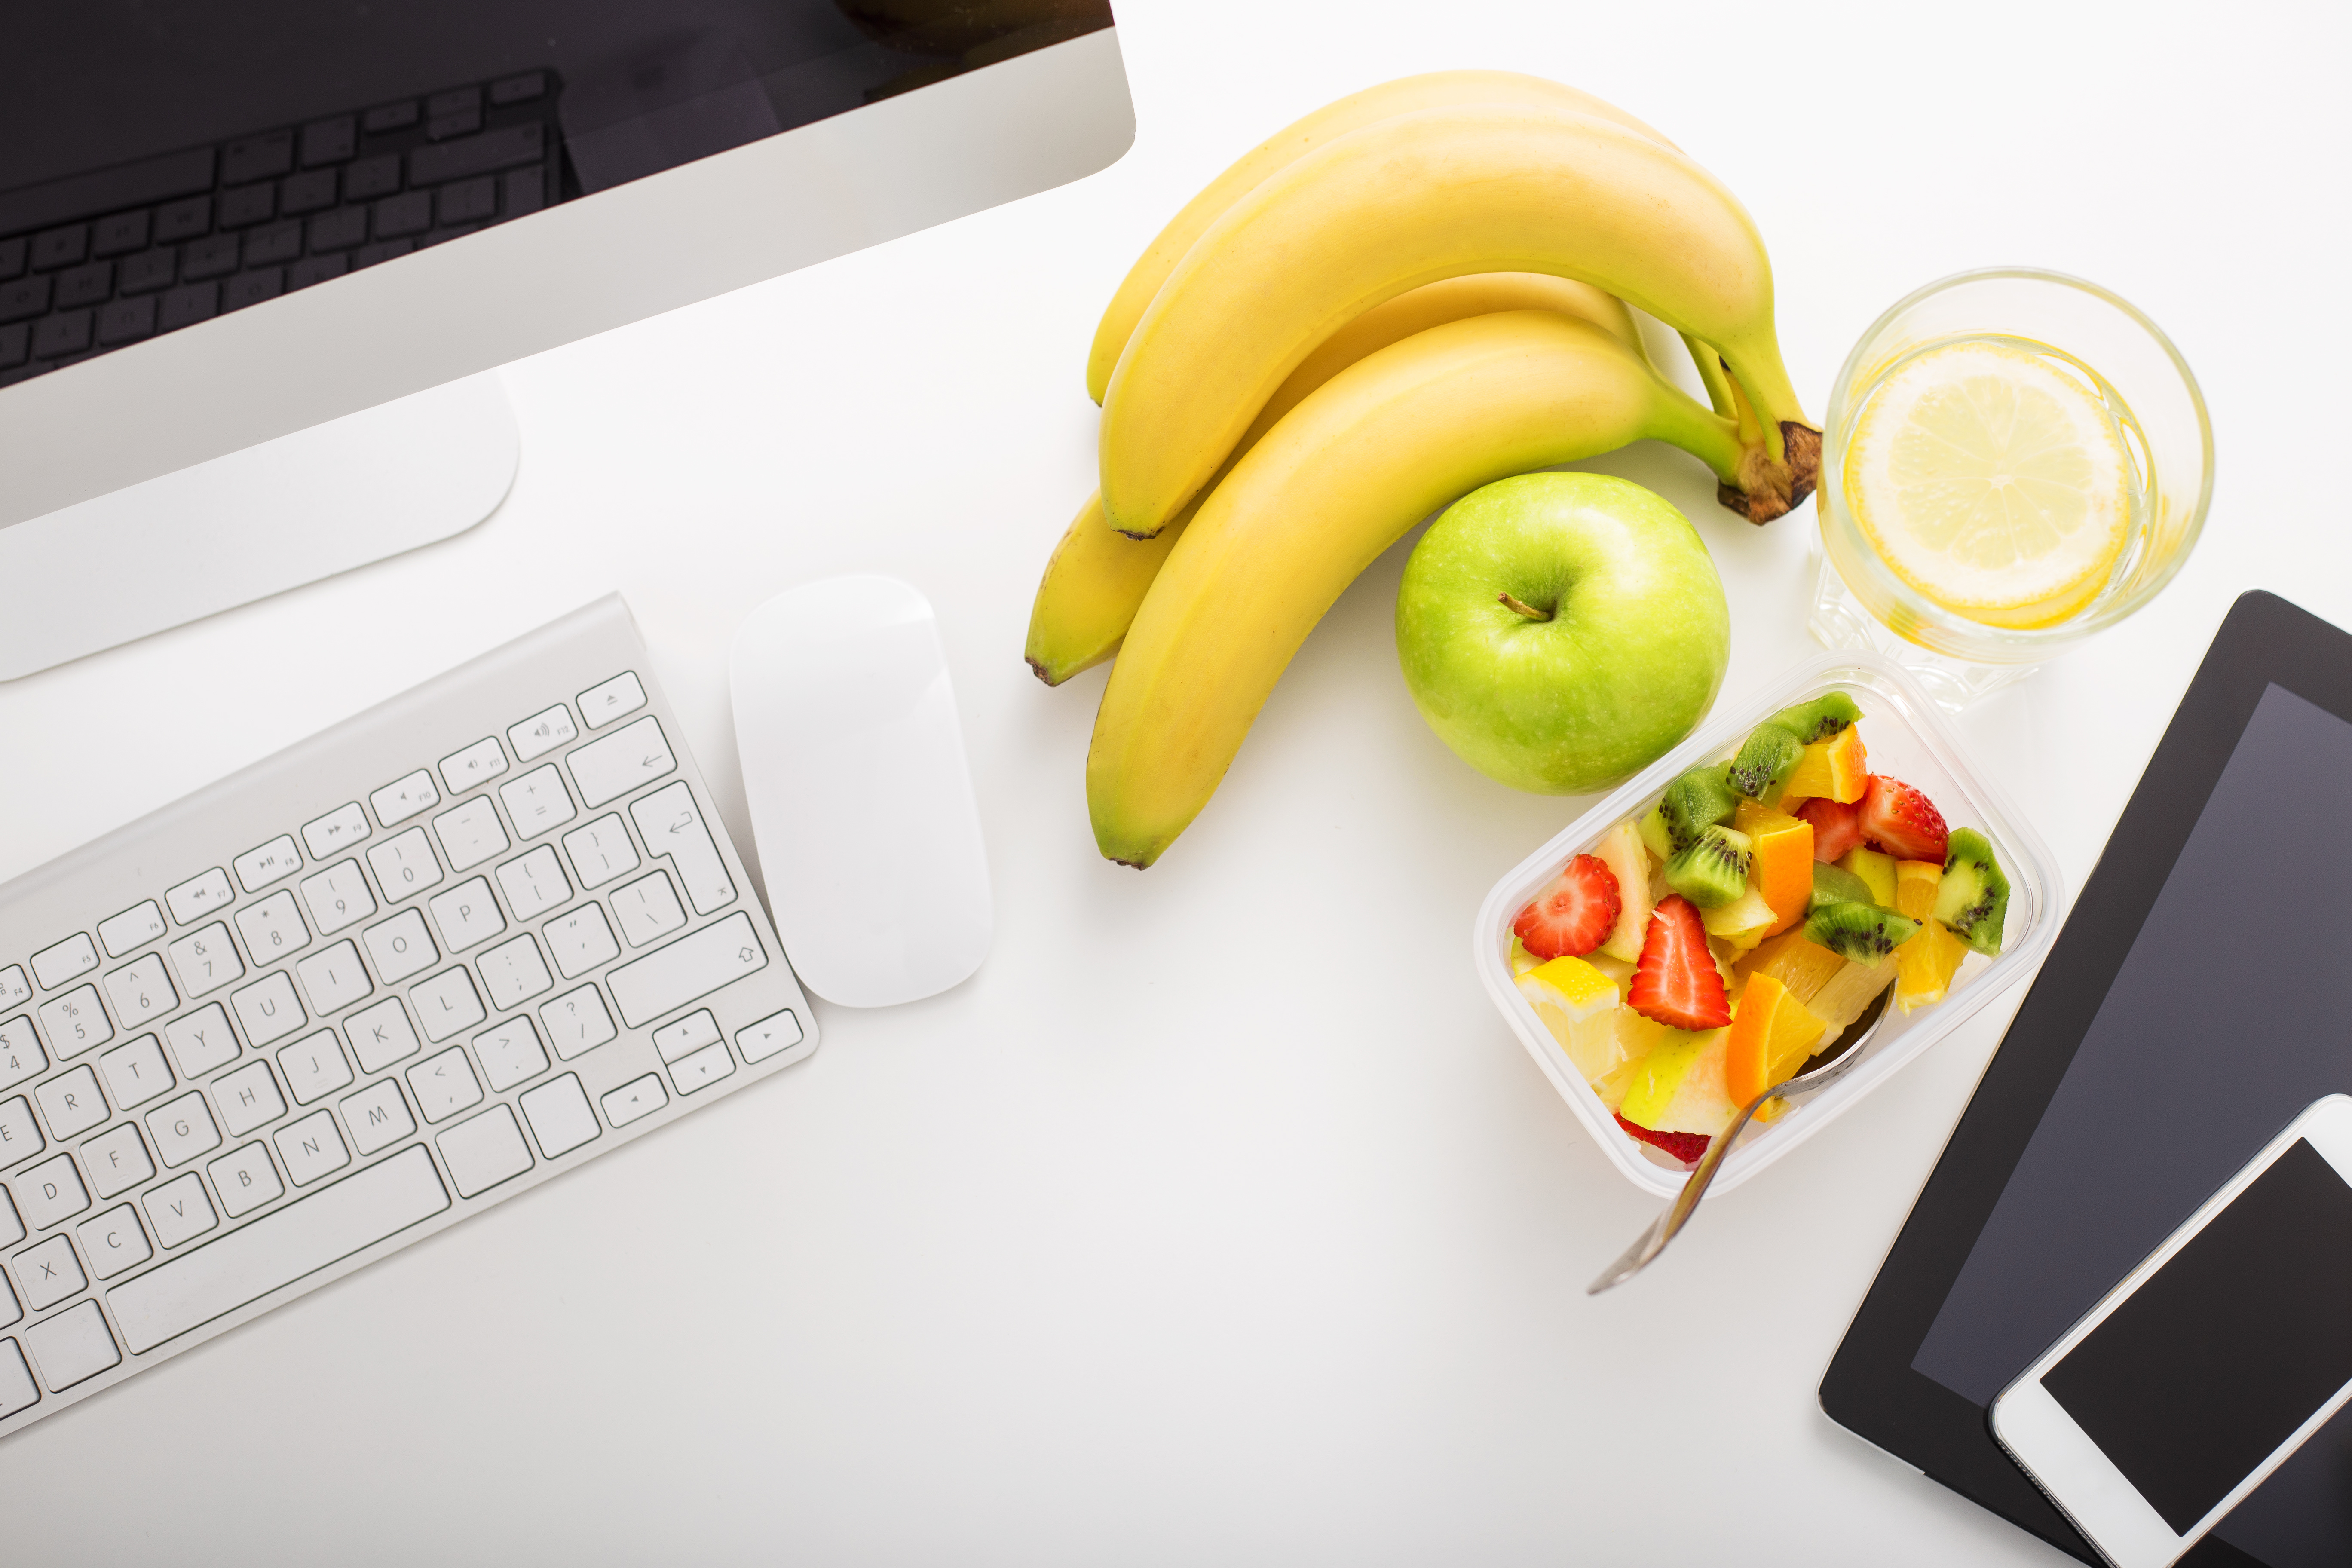 Healthy Snacks and Food in New York City Offices